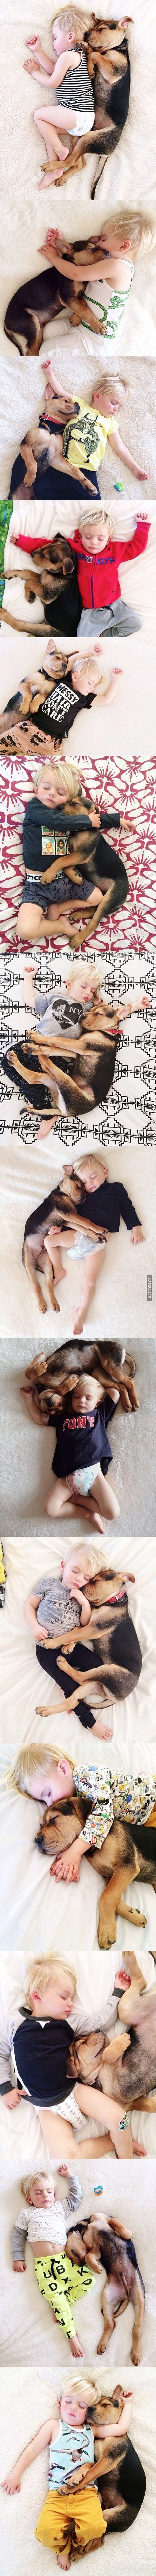 A toddler and his puppy continue napping together.... this is one of the cutest things ever